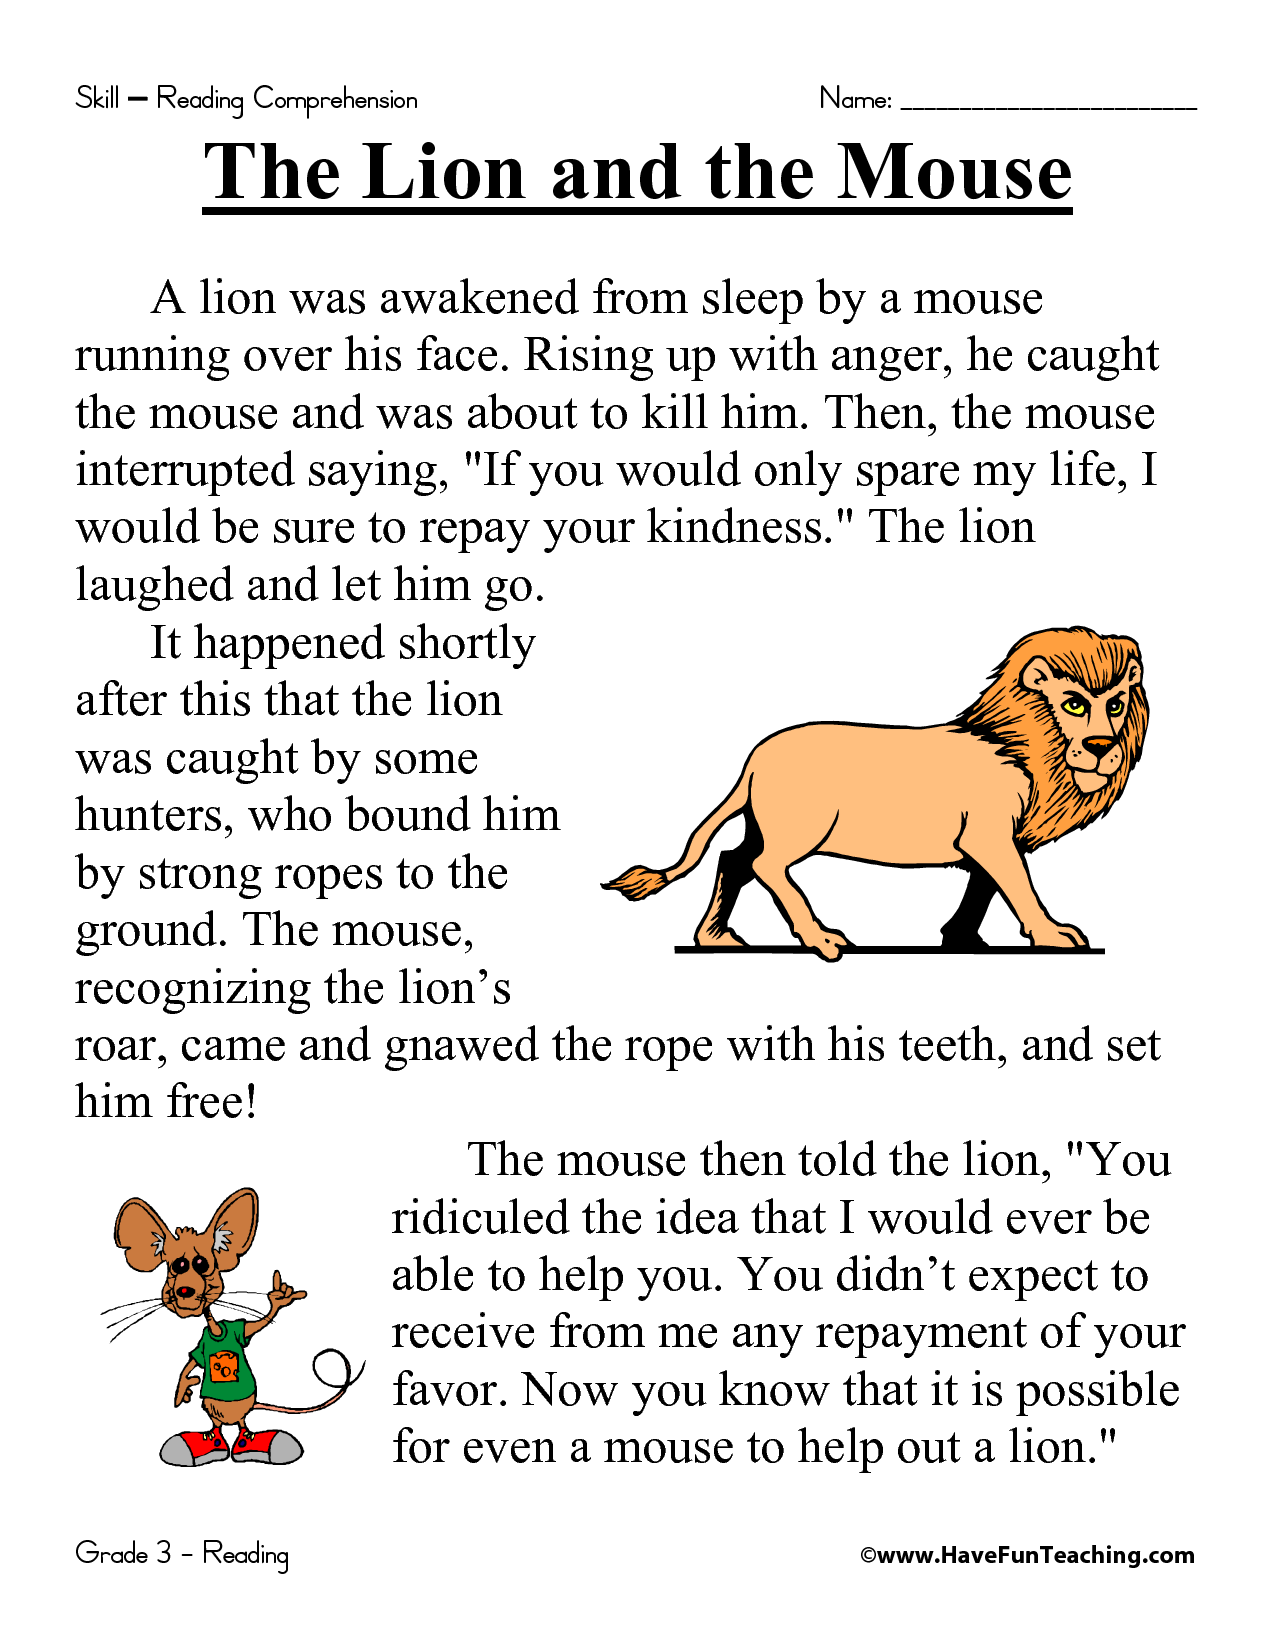 Free Worksheet Free Printable Reading Comprehension Worksheets For 4th Grade printable reading comprehension worksheets inc exercises for first grade the lion and mouse worksheet